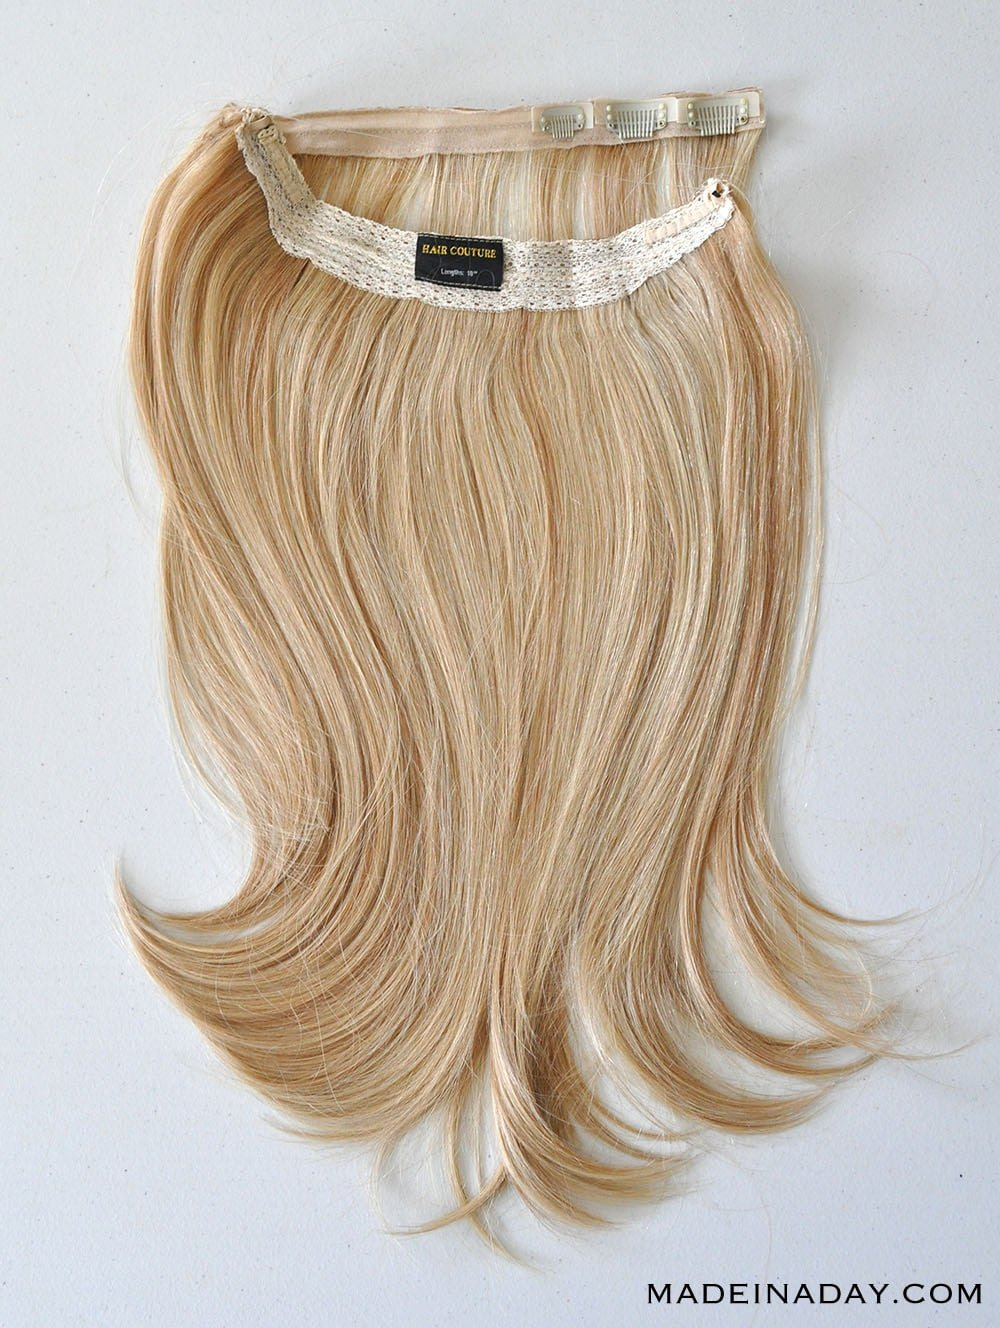 "HAIR COUTURE SMART HAIR 18"" HALO IN CARAMEL BLONDE, adding volume to thin hair with a halo"